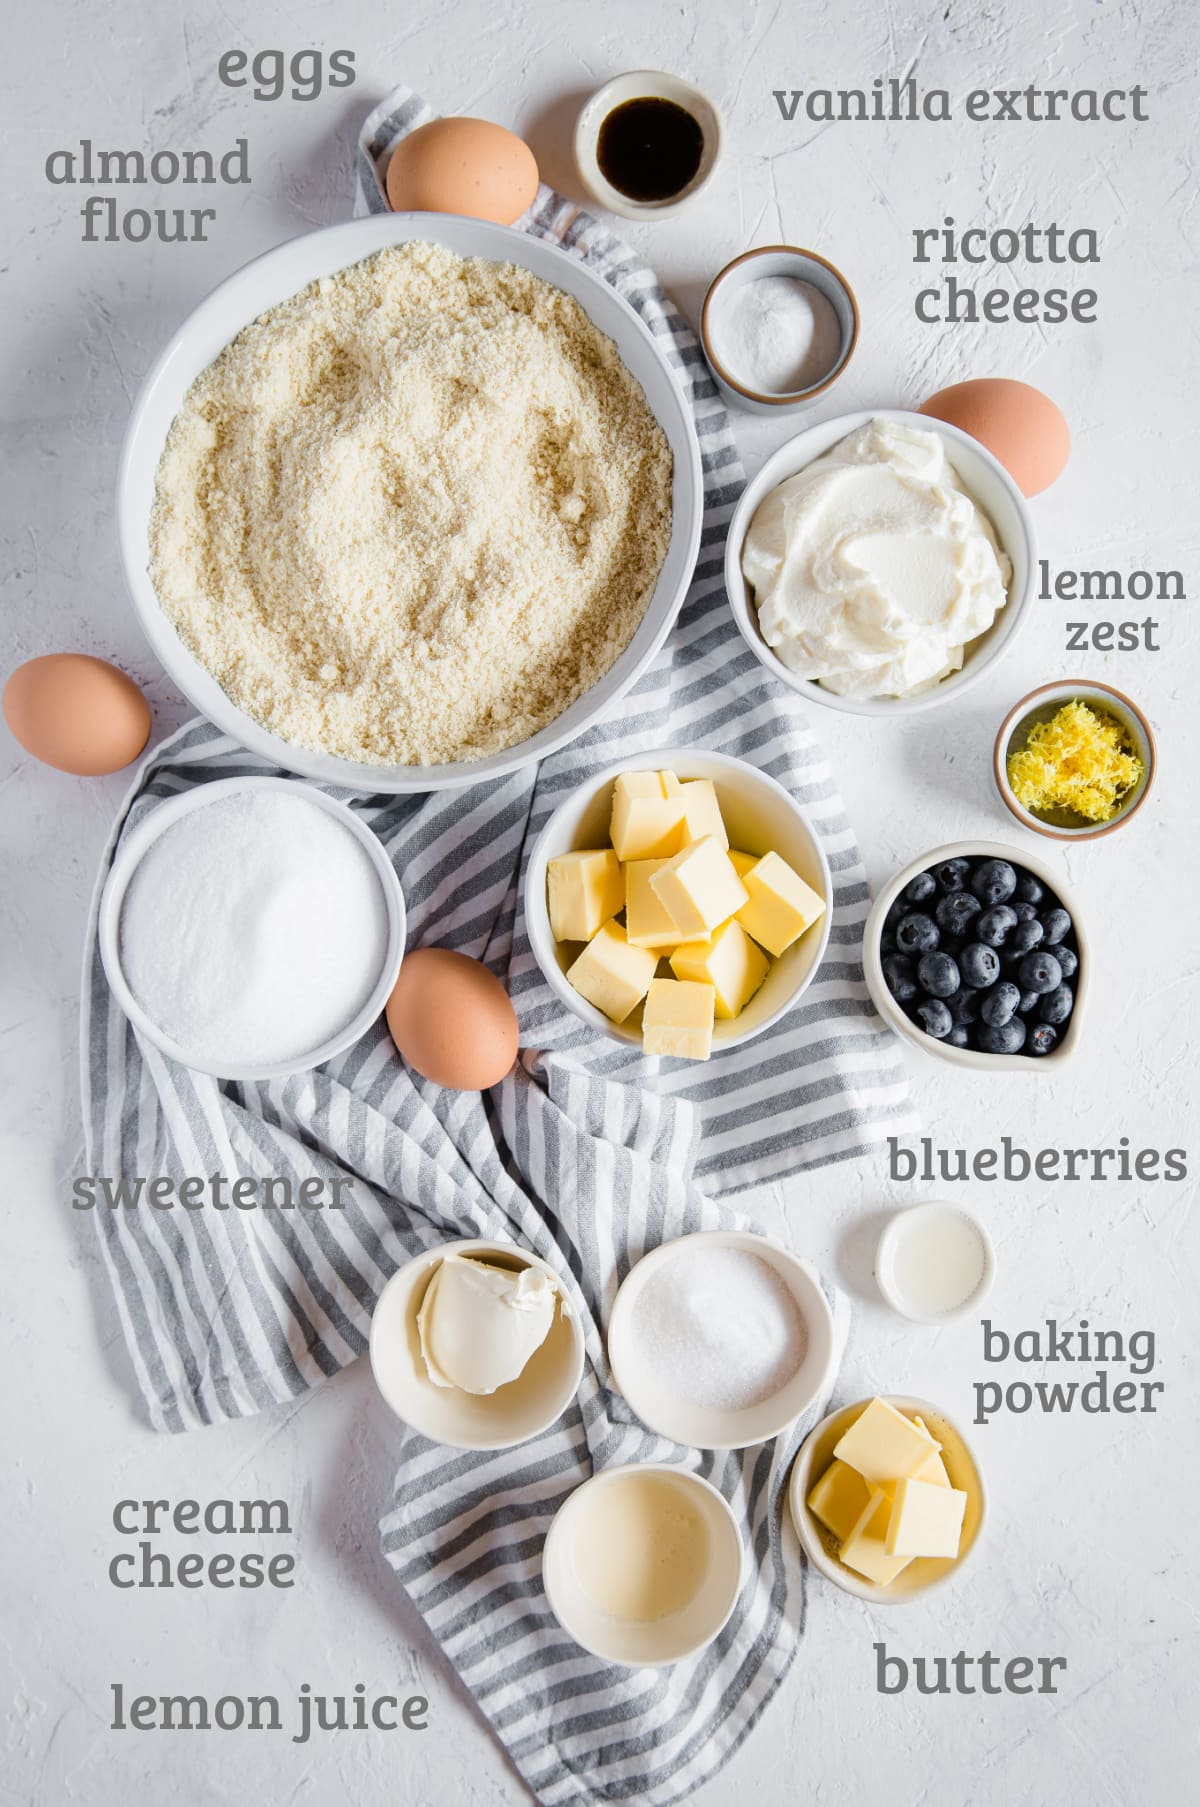 Ingredients for a low carb blueberry lemon pound cake - almond flour, sweetener, butter, vanilla, eggs, lemon, ricotta, blueberries